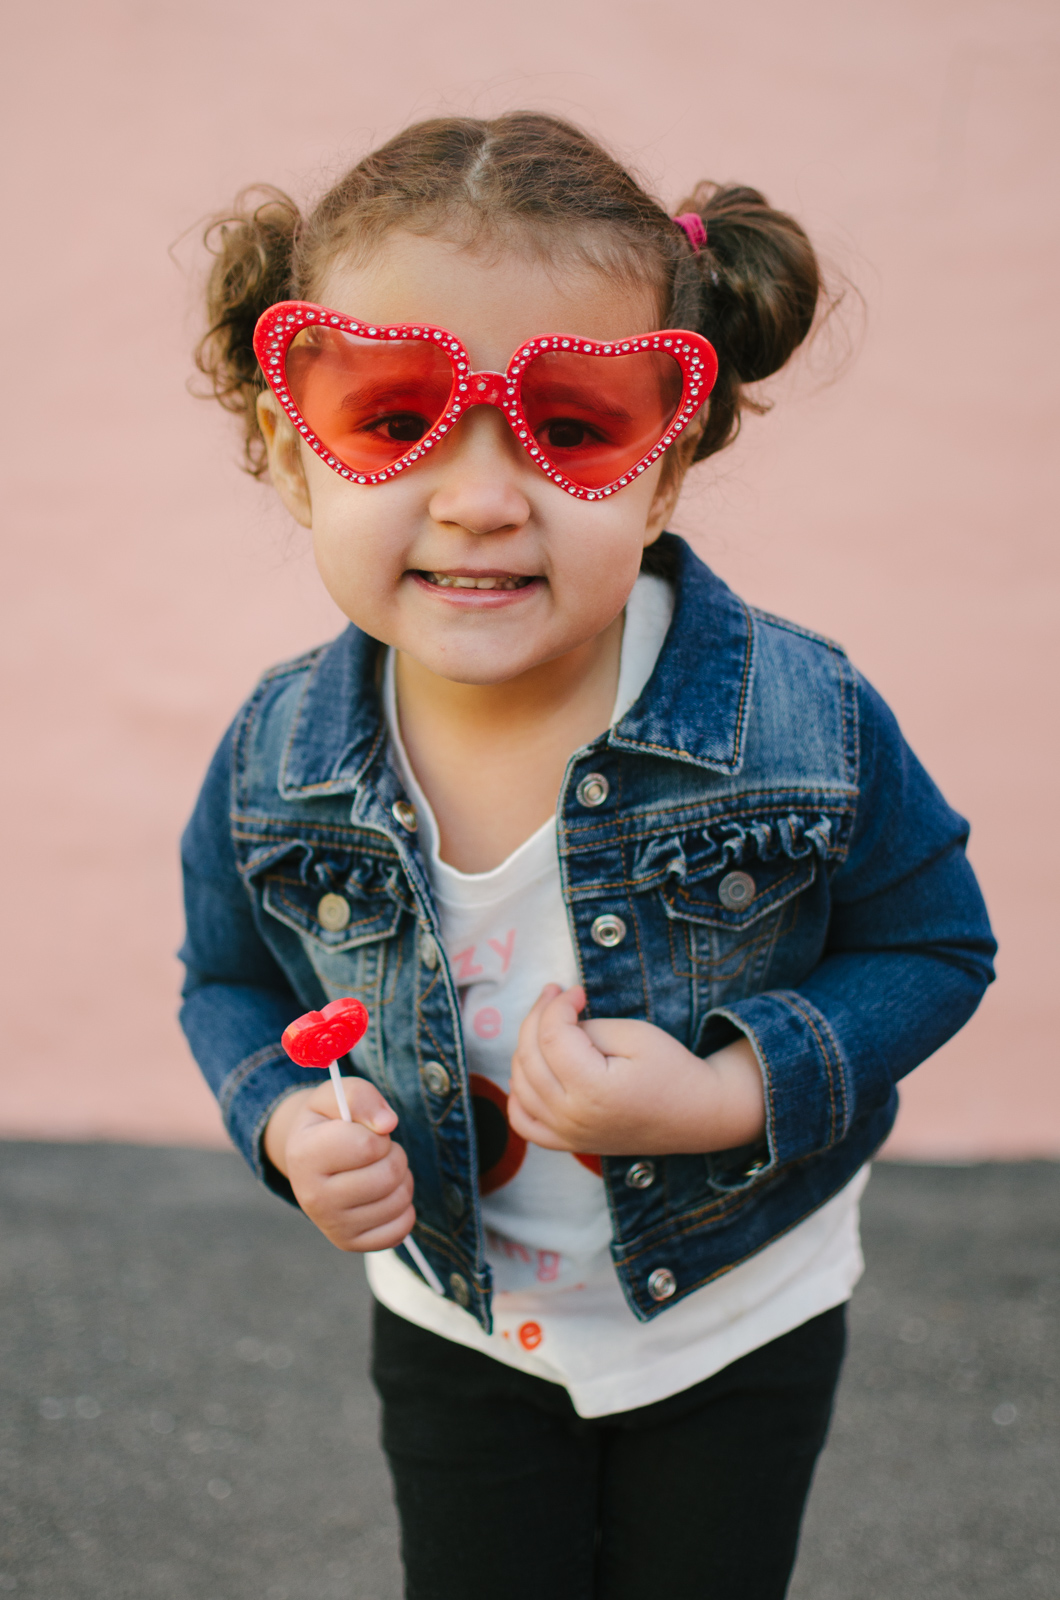 toddler girl outfit for valentines day - toddler girl outfit spring | Shop this outfits or see more toddler girl outfits at bylaurenm.com!